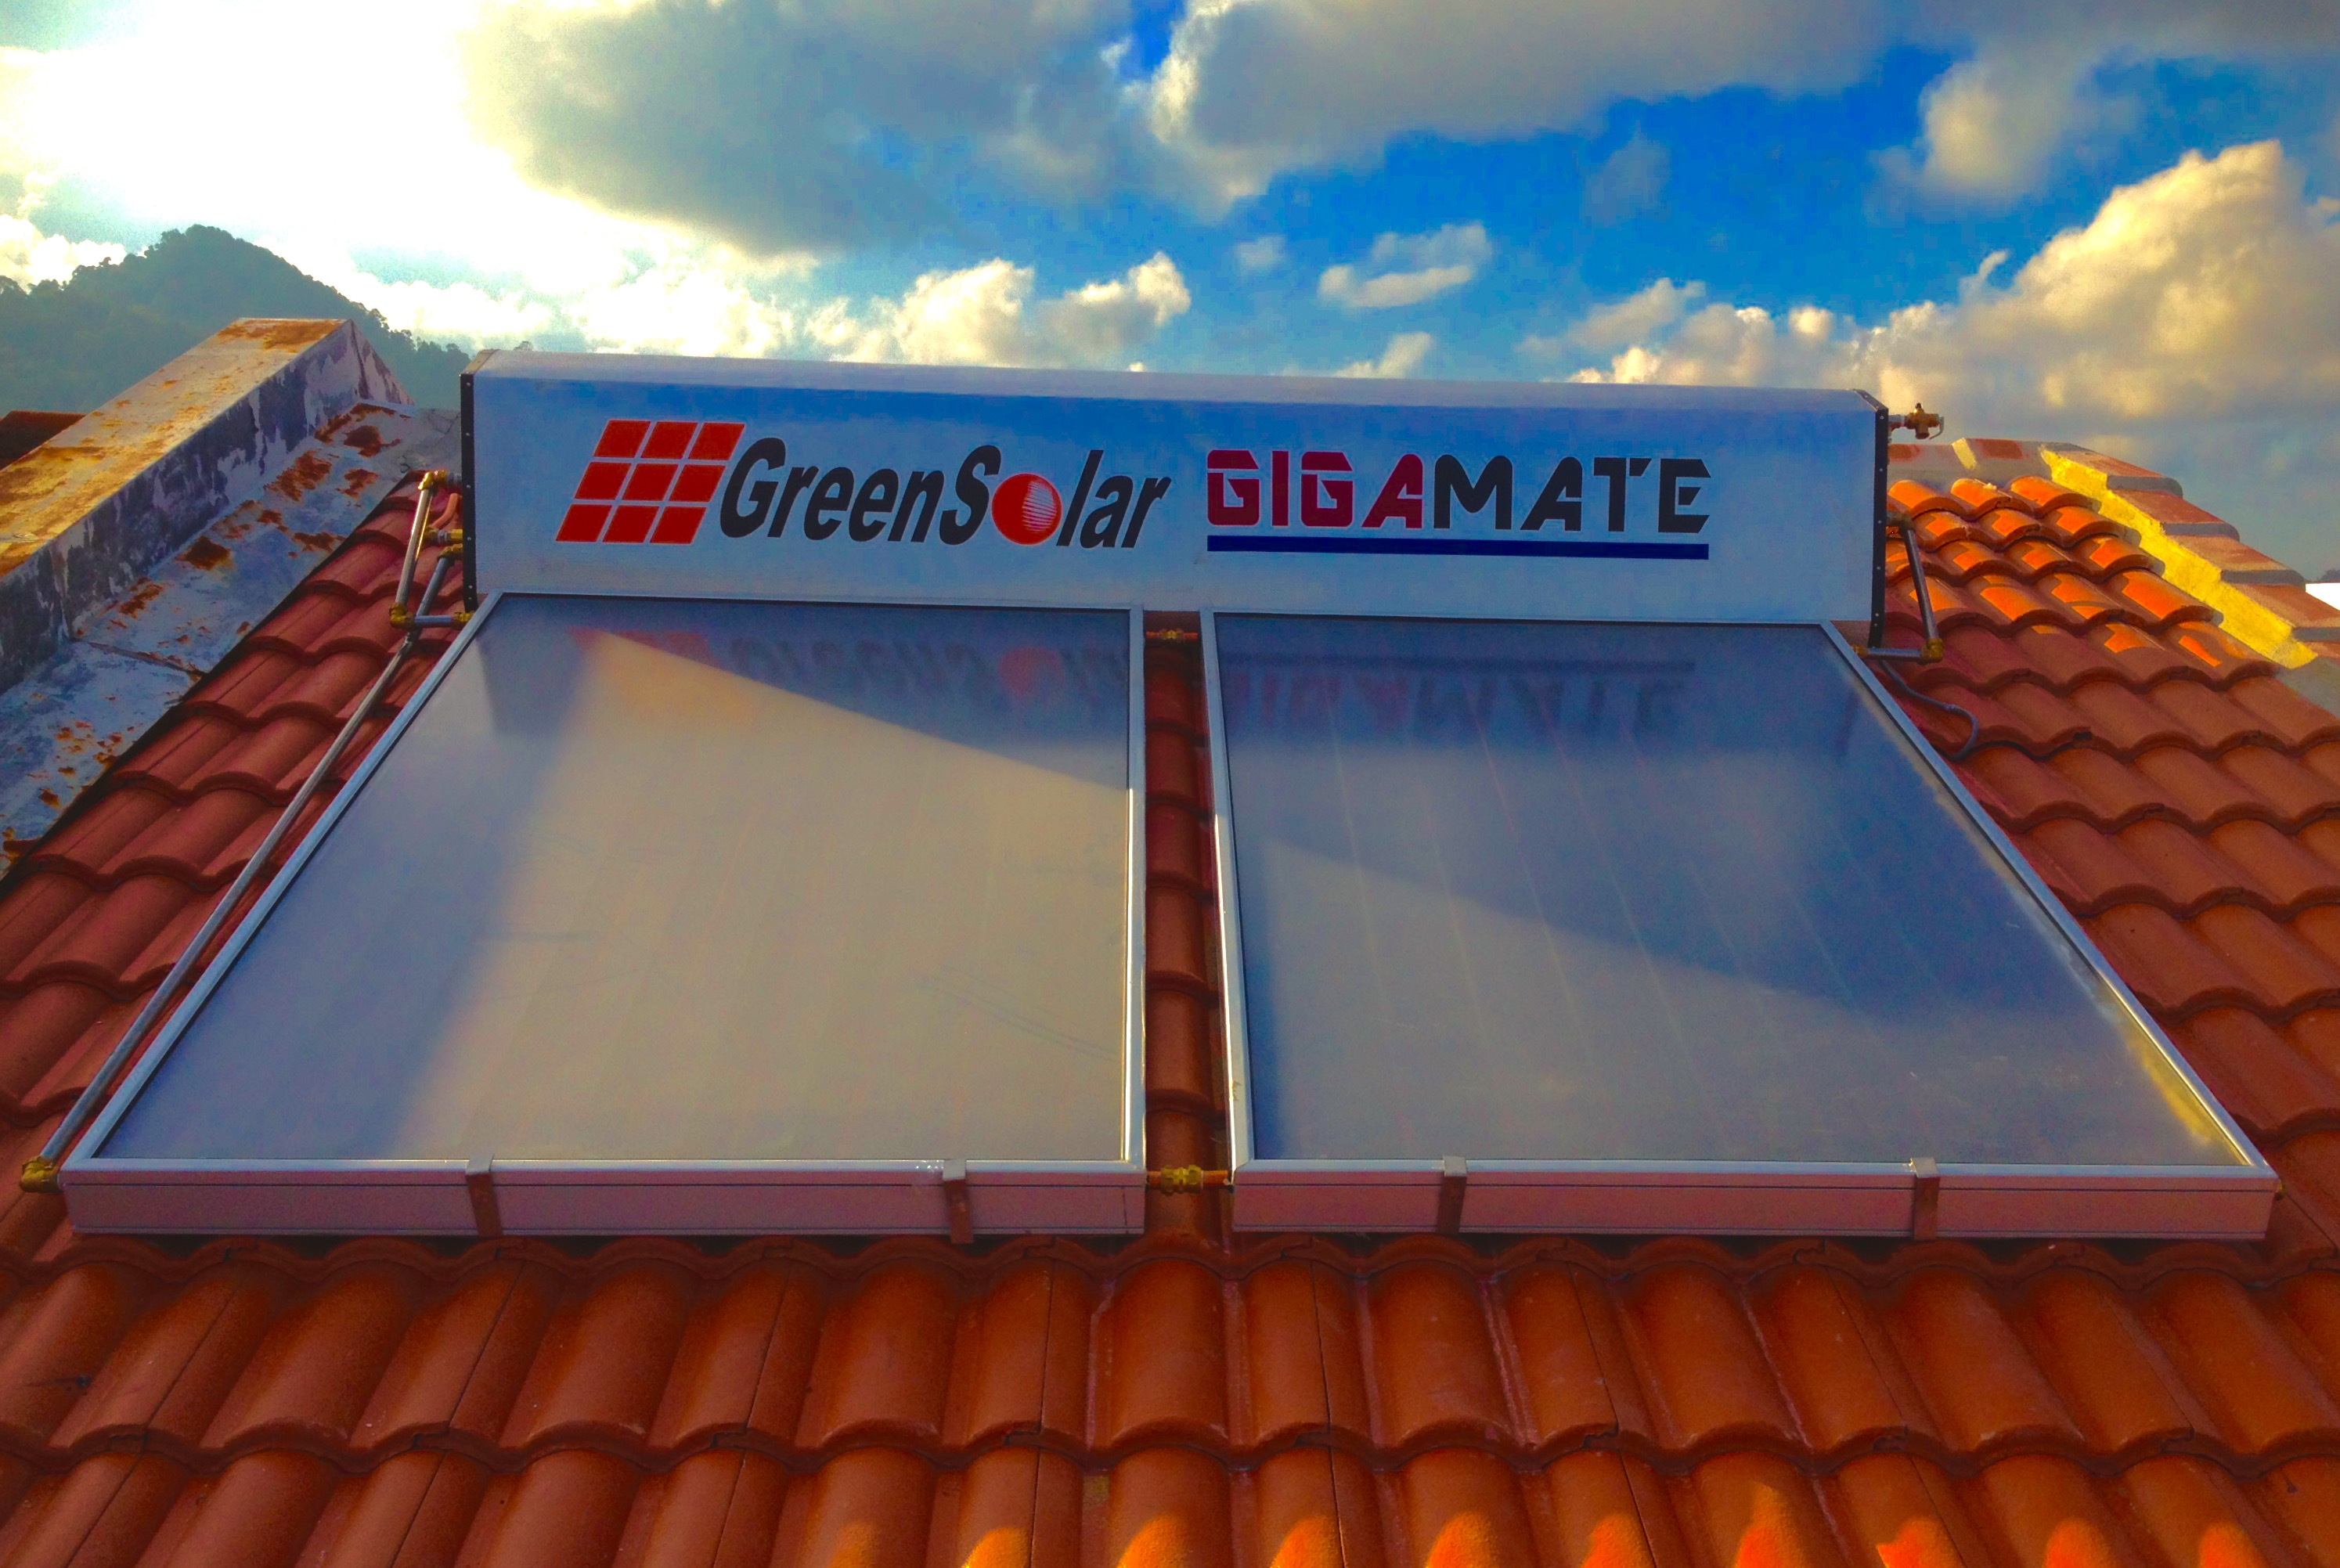 GIGAMATE Green Solar Hot Water Heater - Titanium Series